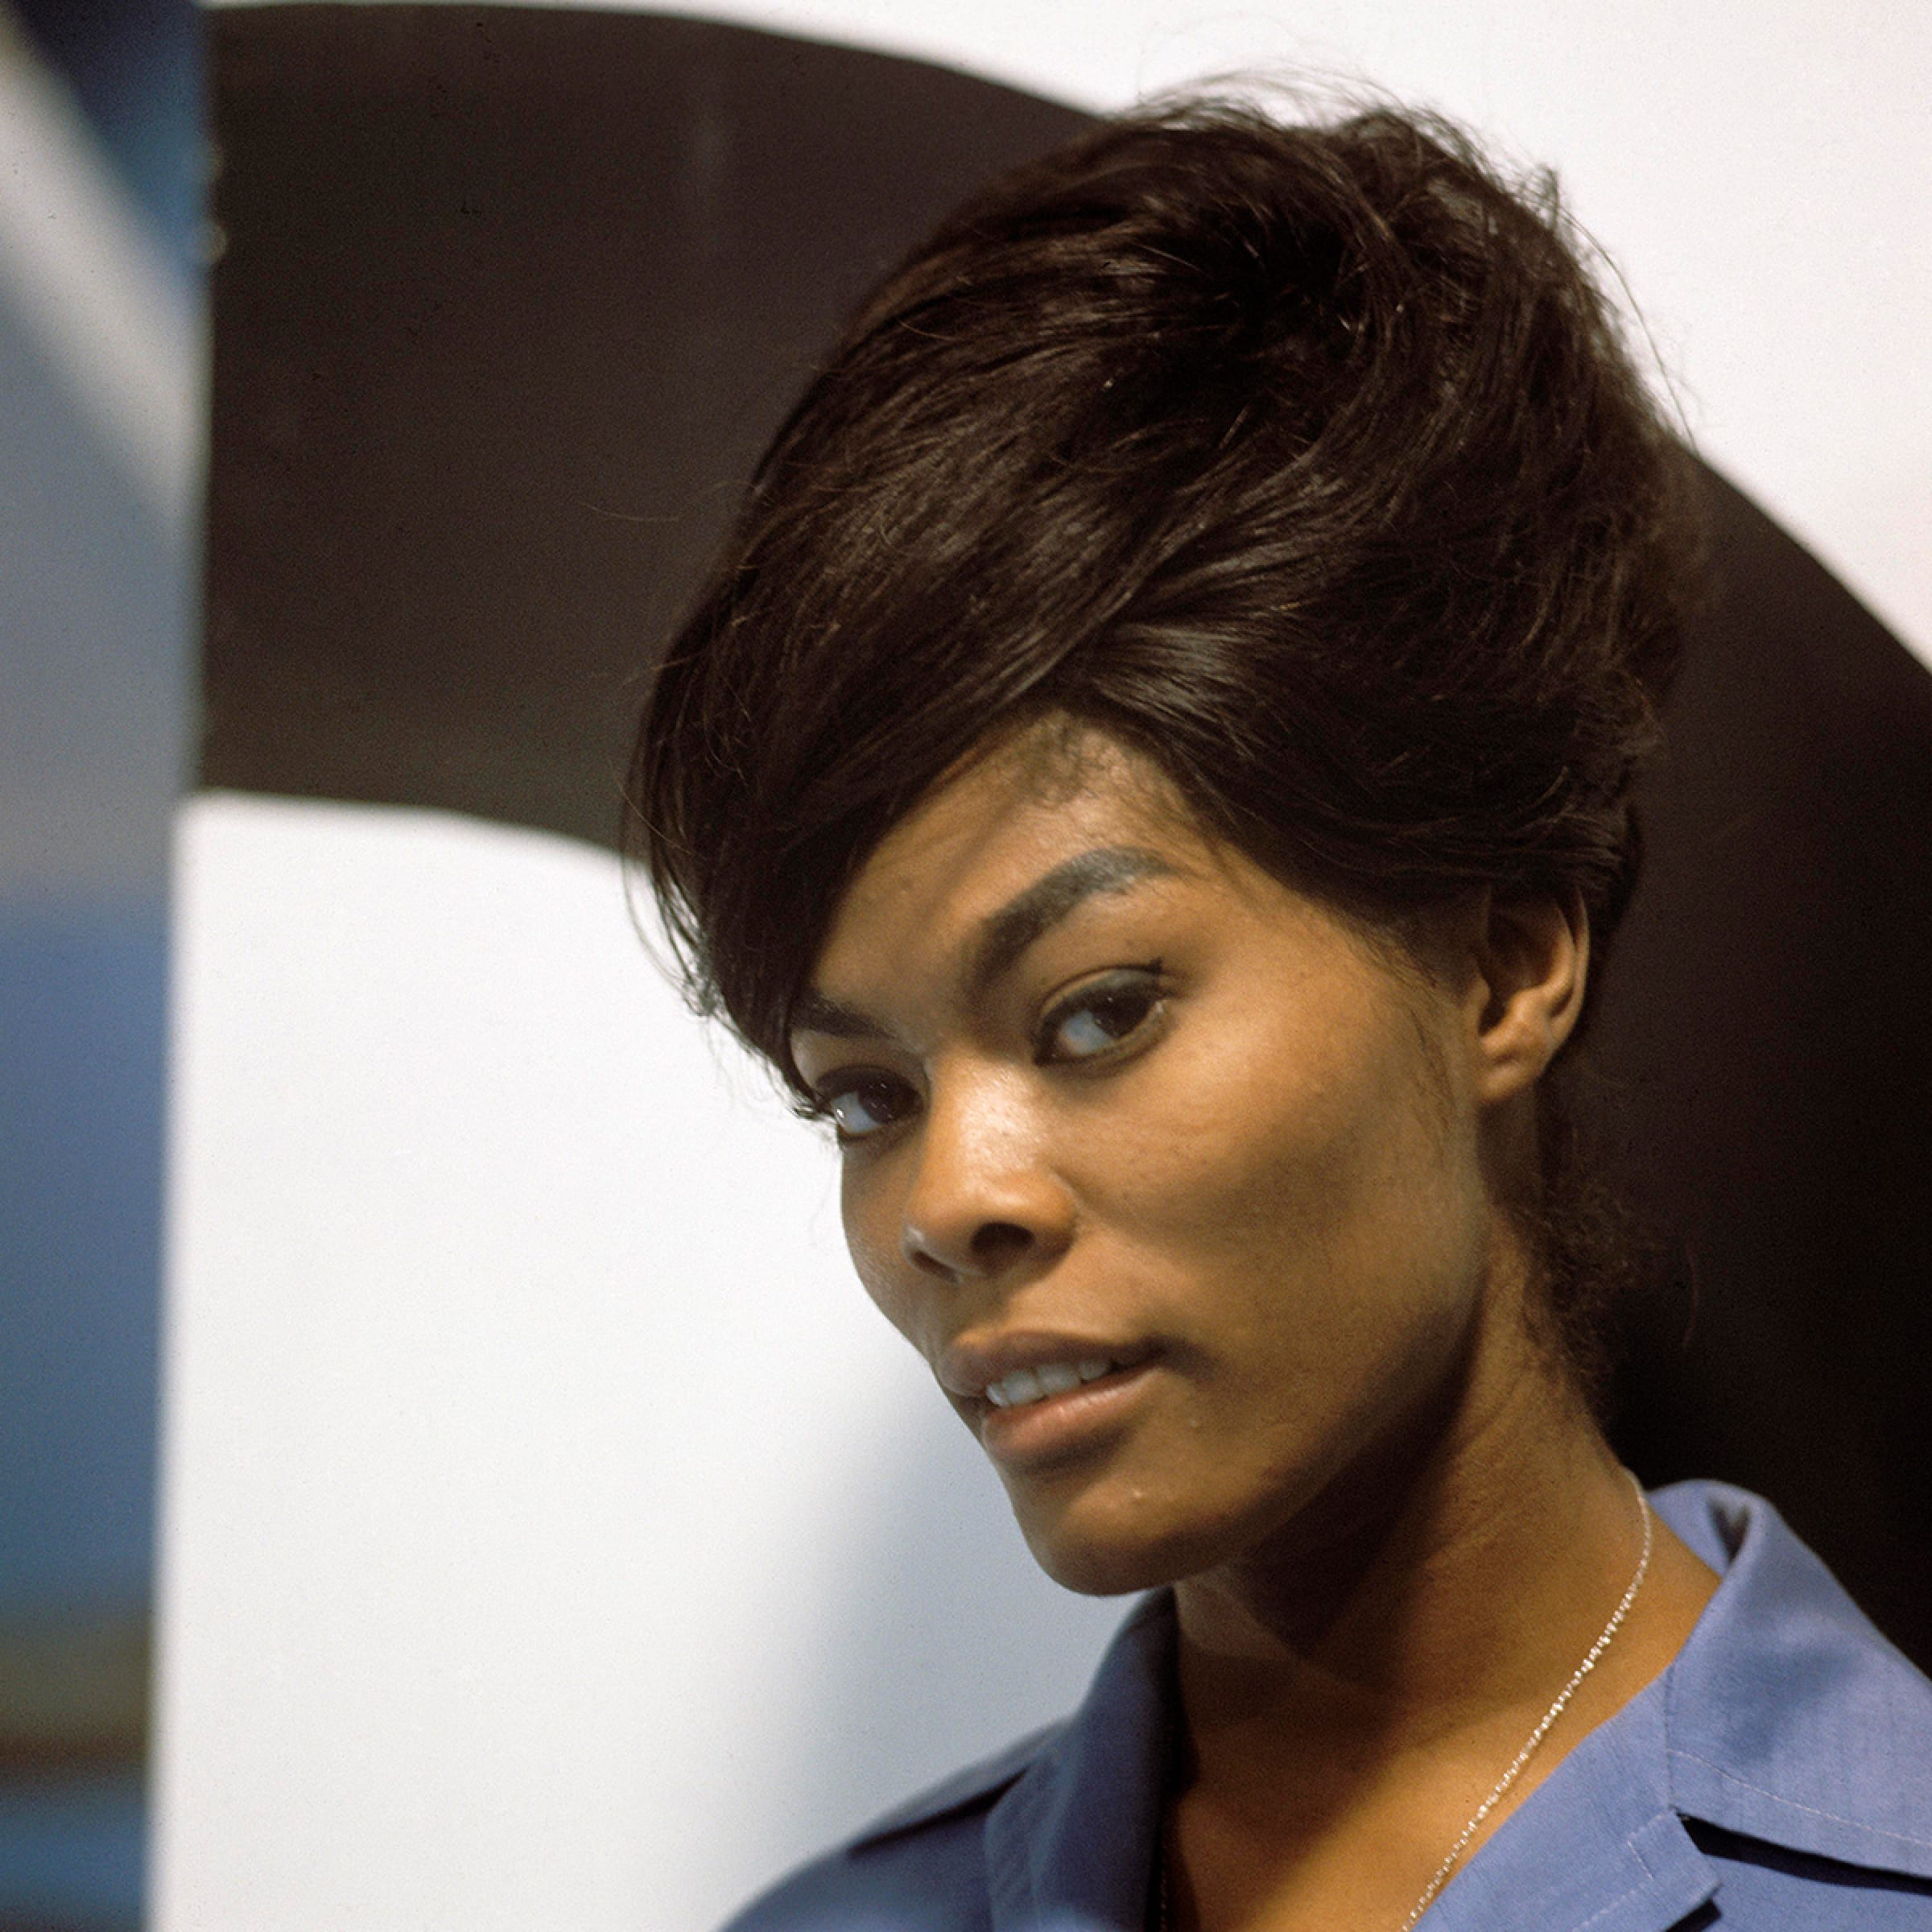 Singer Dionne Warwick looks at the camera. Her hair is in a beehive style and her blue shirt collar is visible.